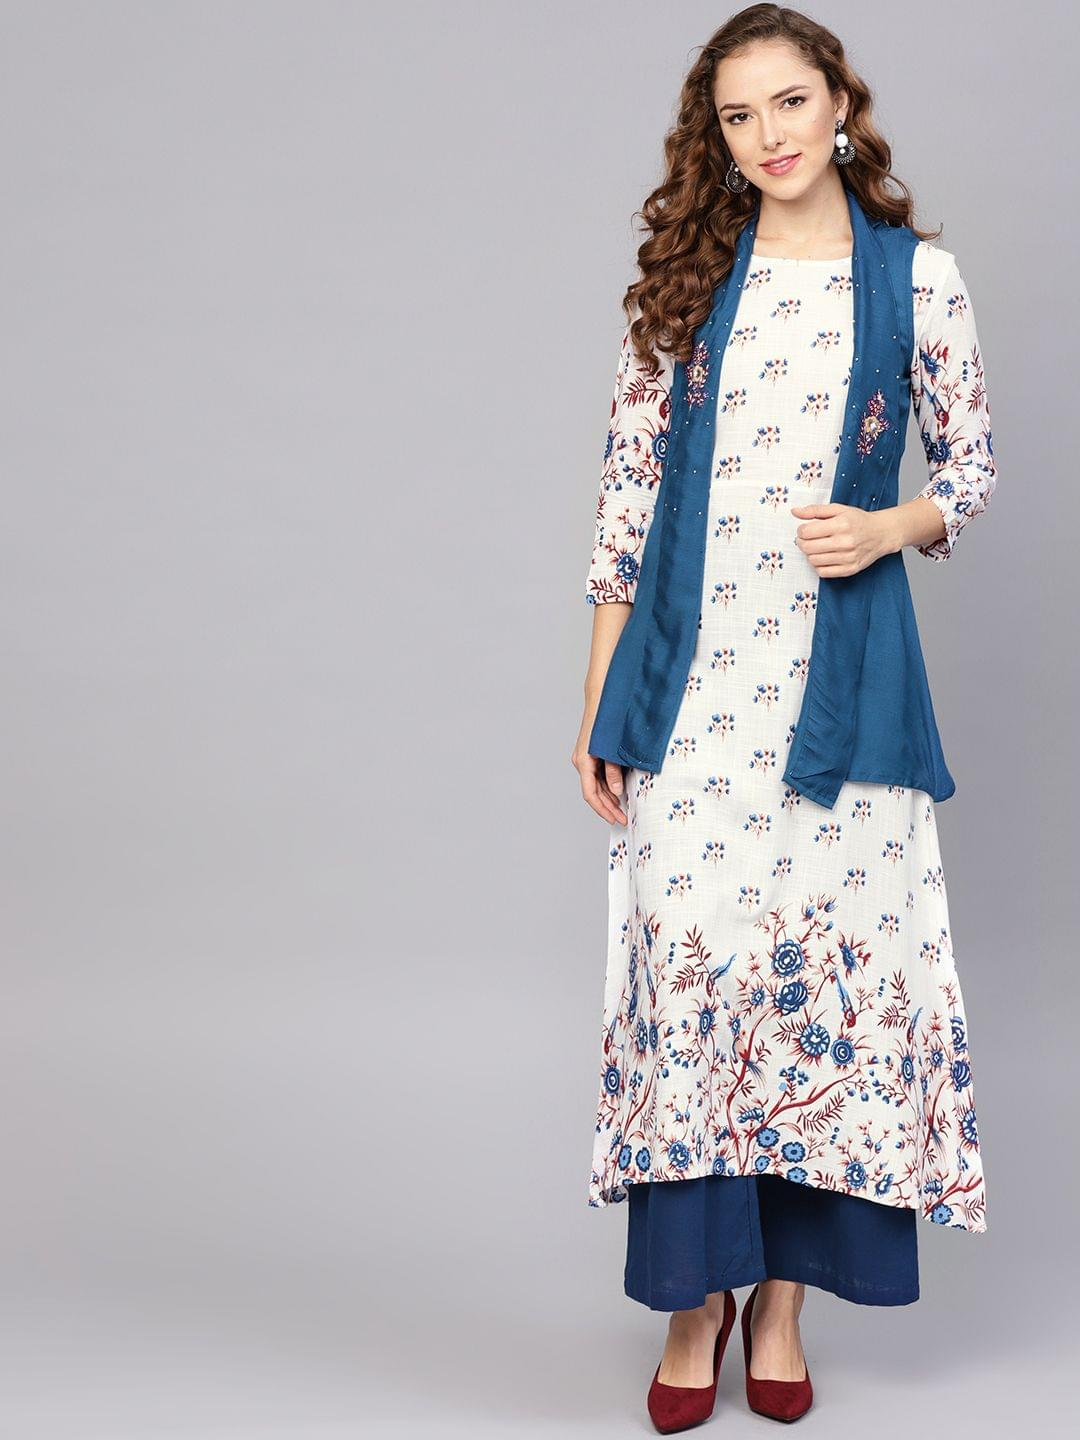 Yufta Women White & Teal Blue Printed A-Line Kurta with Ethnic Jacket